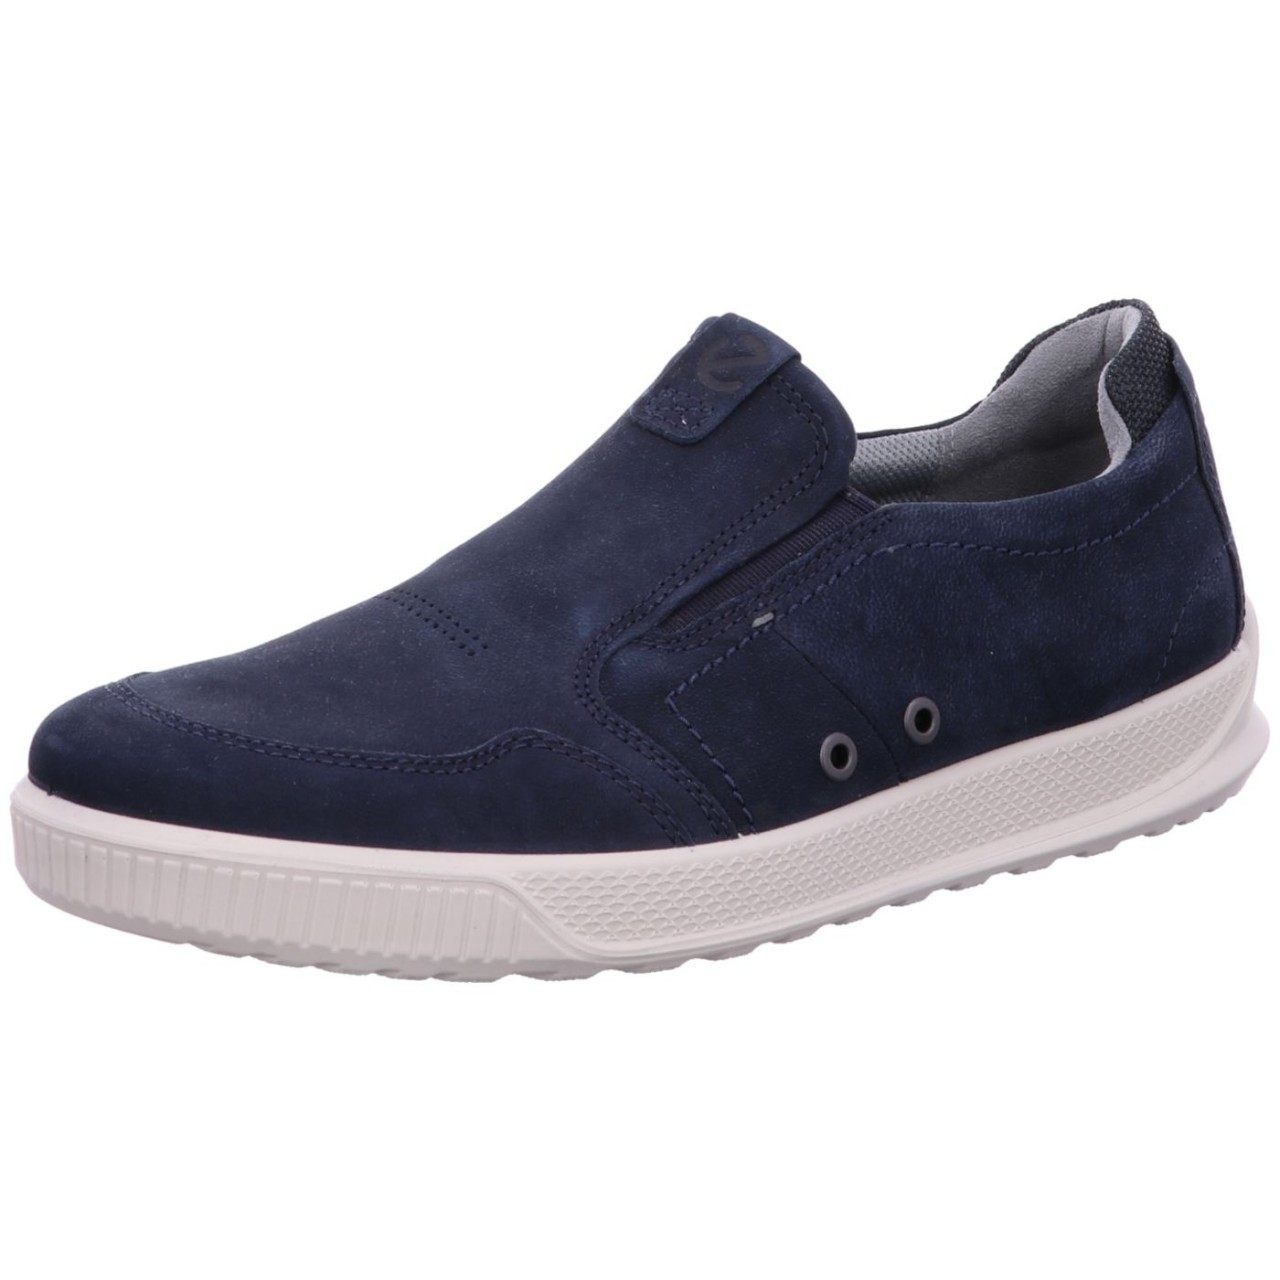 Ecco Slipper Bayway Blau NAVY 02058 501554-02058